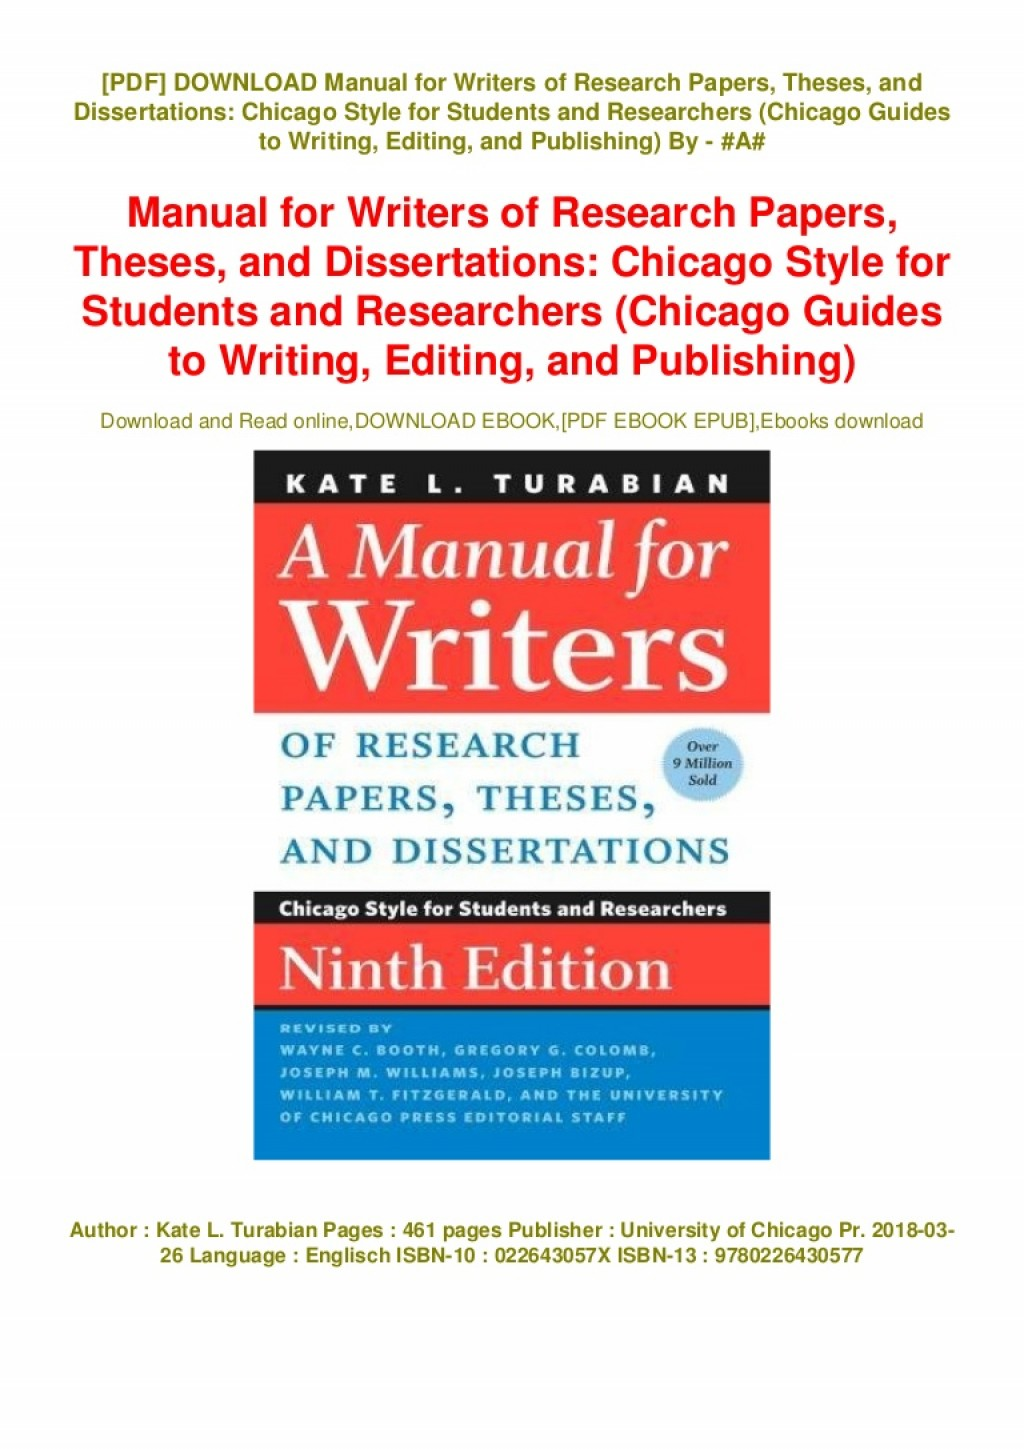 005 Manual For Writers Of Research Papers Theses And Dissertations Pdf Download Chicago Style Students Impressive A Large